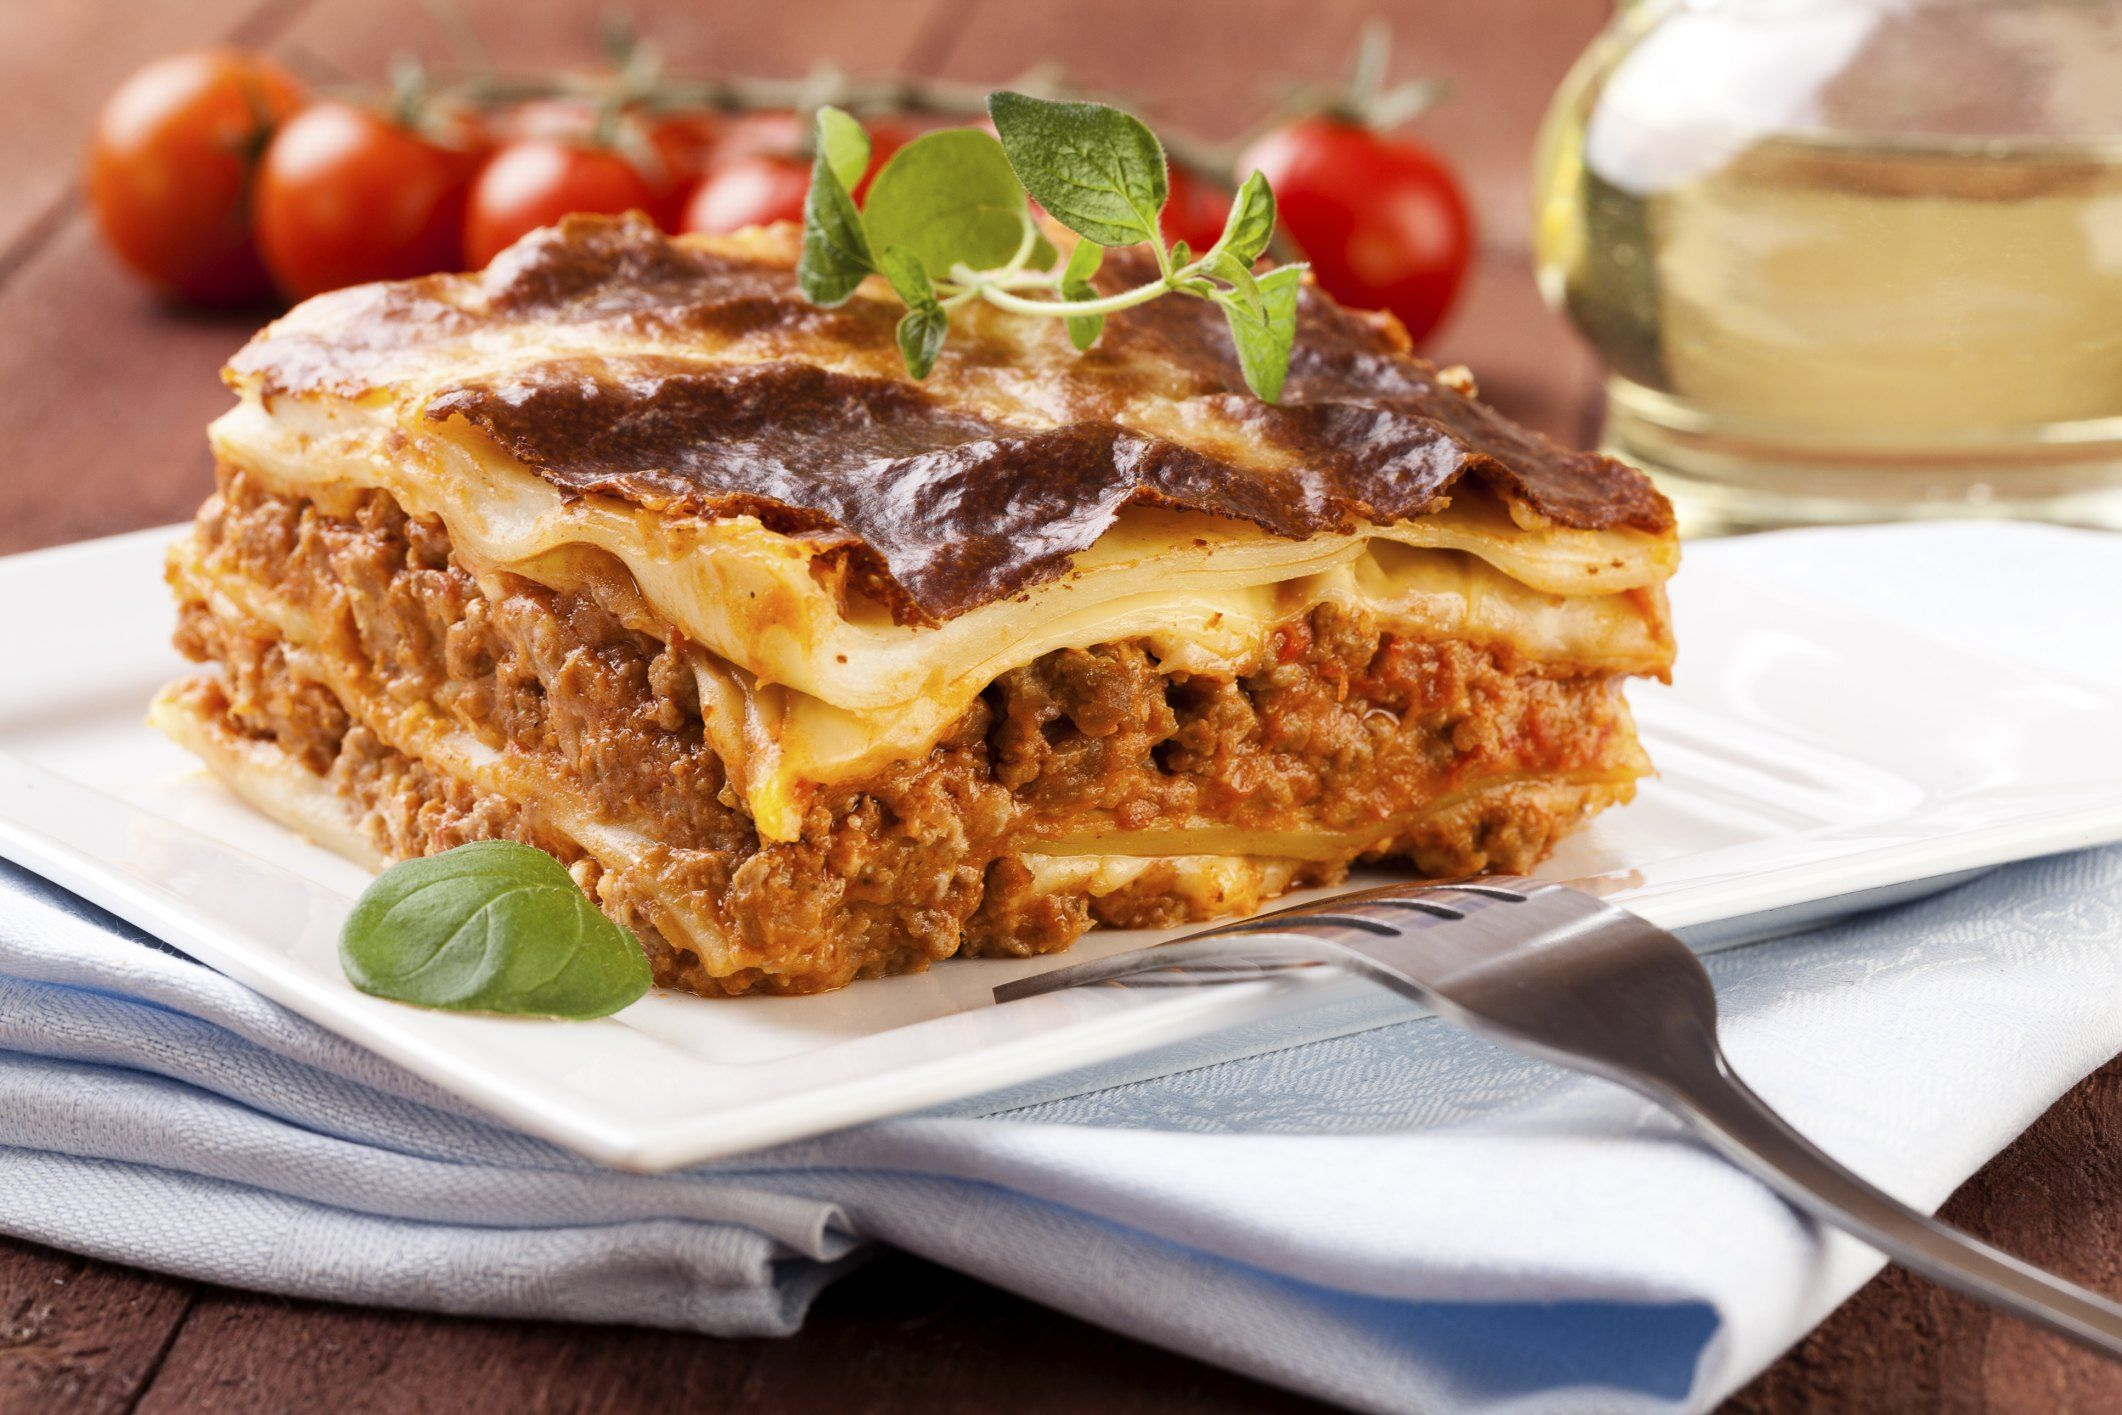 How To Reheat Lasagna In The Oven Livestrong Com How To Reheat Lasagna Lasagna In The Oven Frozen Lasagna